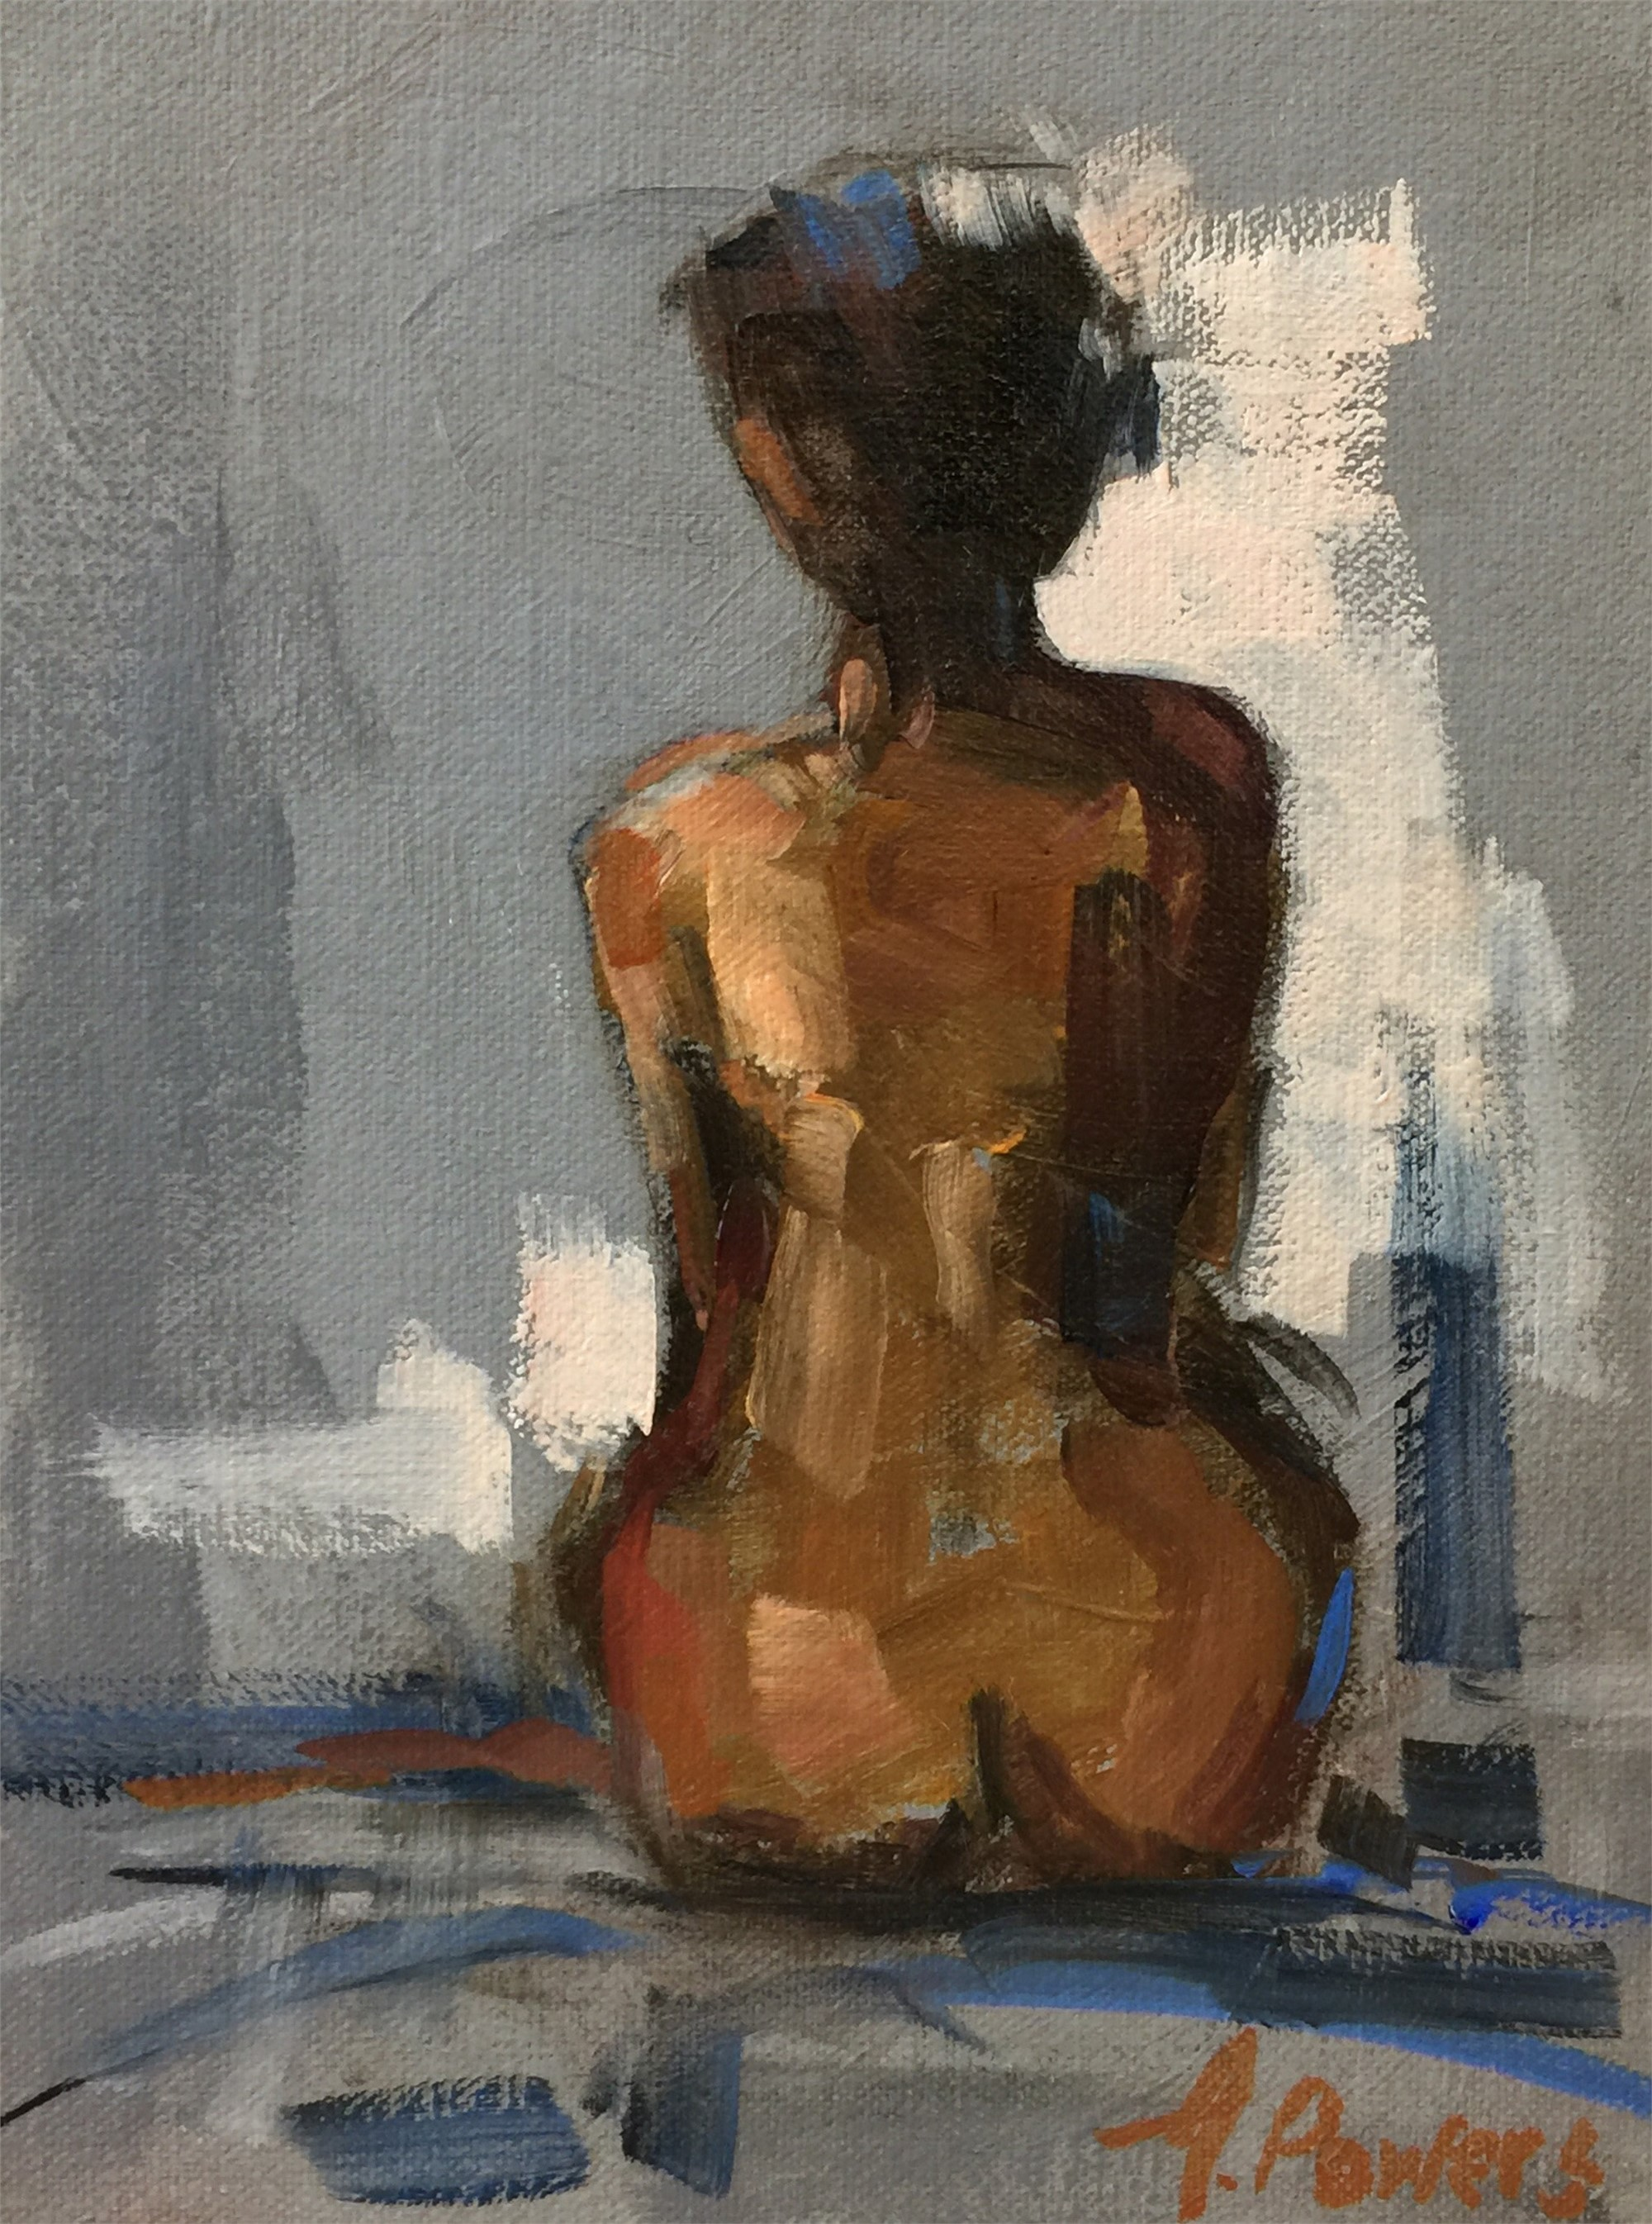 Rear View by Angela Powers